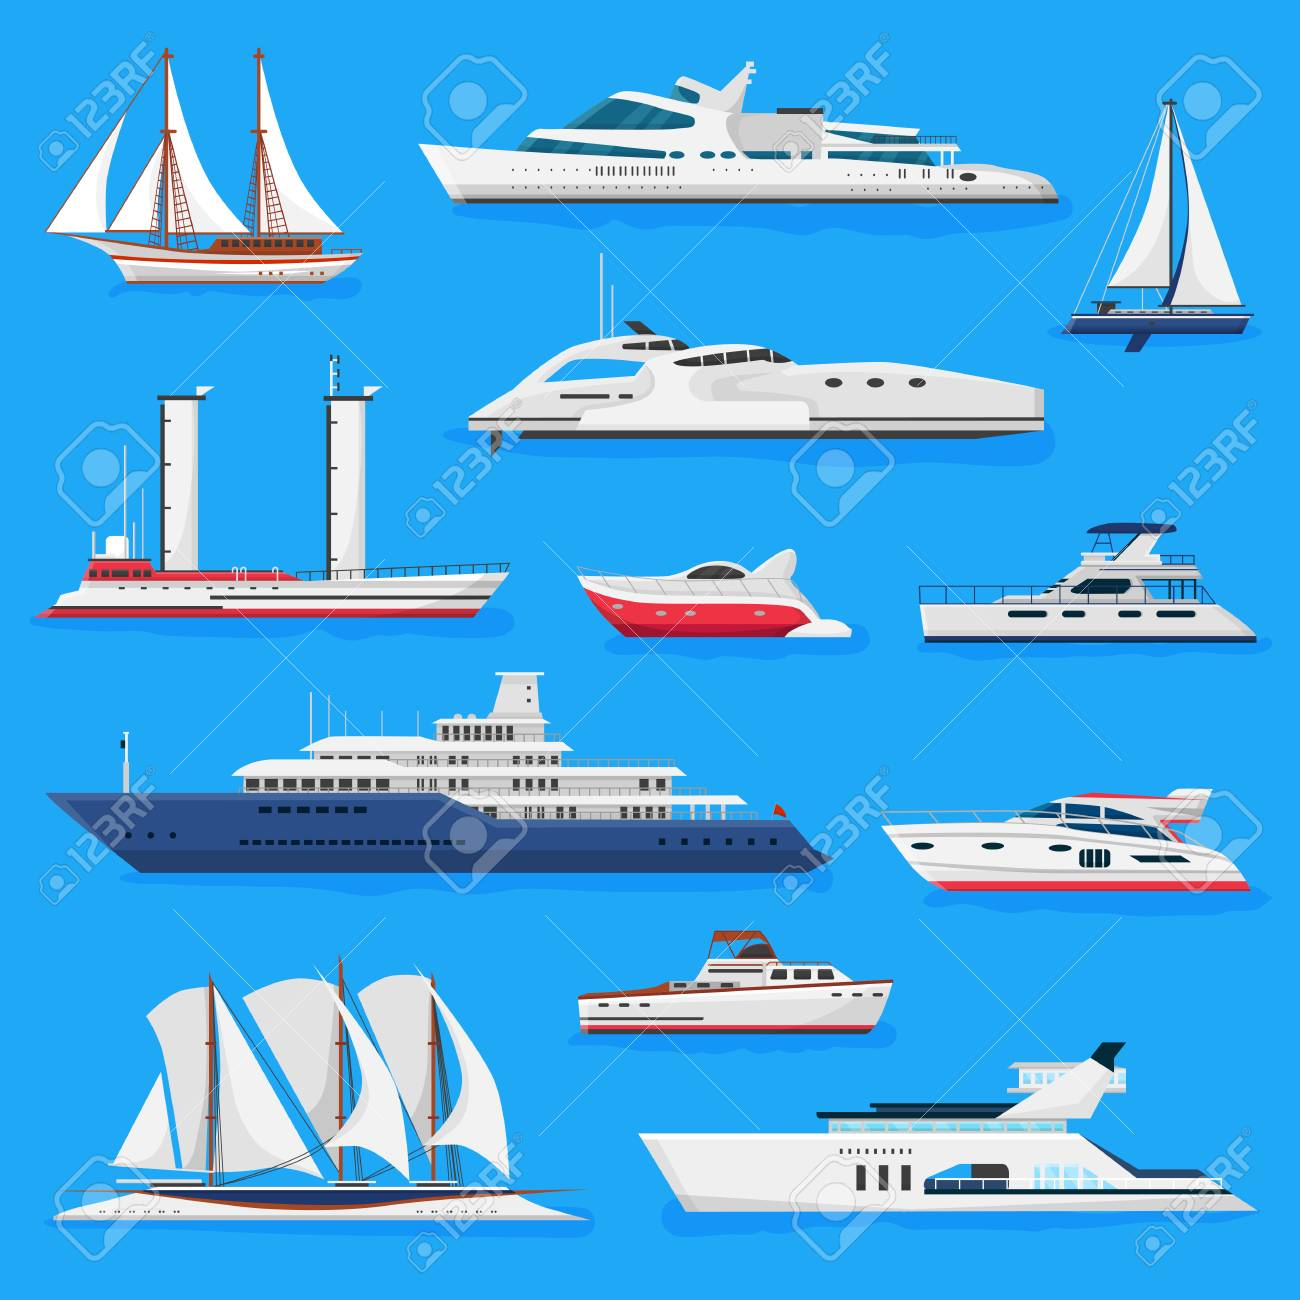 Ships vector boats or cruise travelling in ocean or sea and shipping transportation illustration marine set of nautical sailboat yachting or speedboat isolated on background. - 112223811